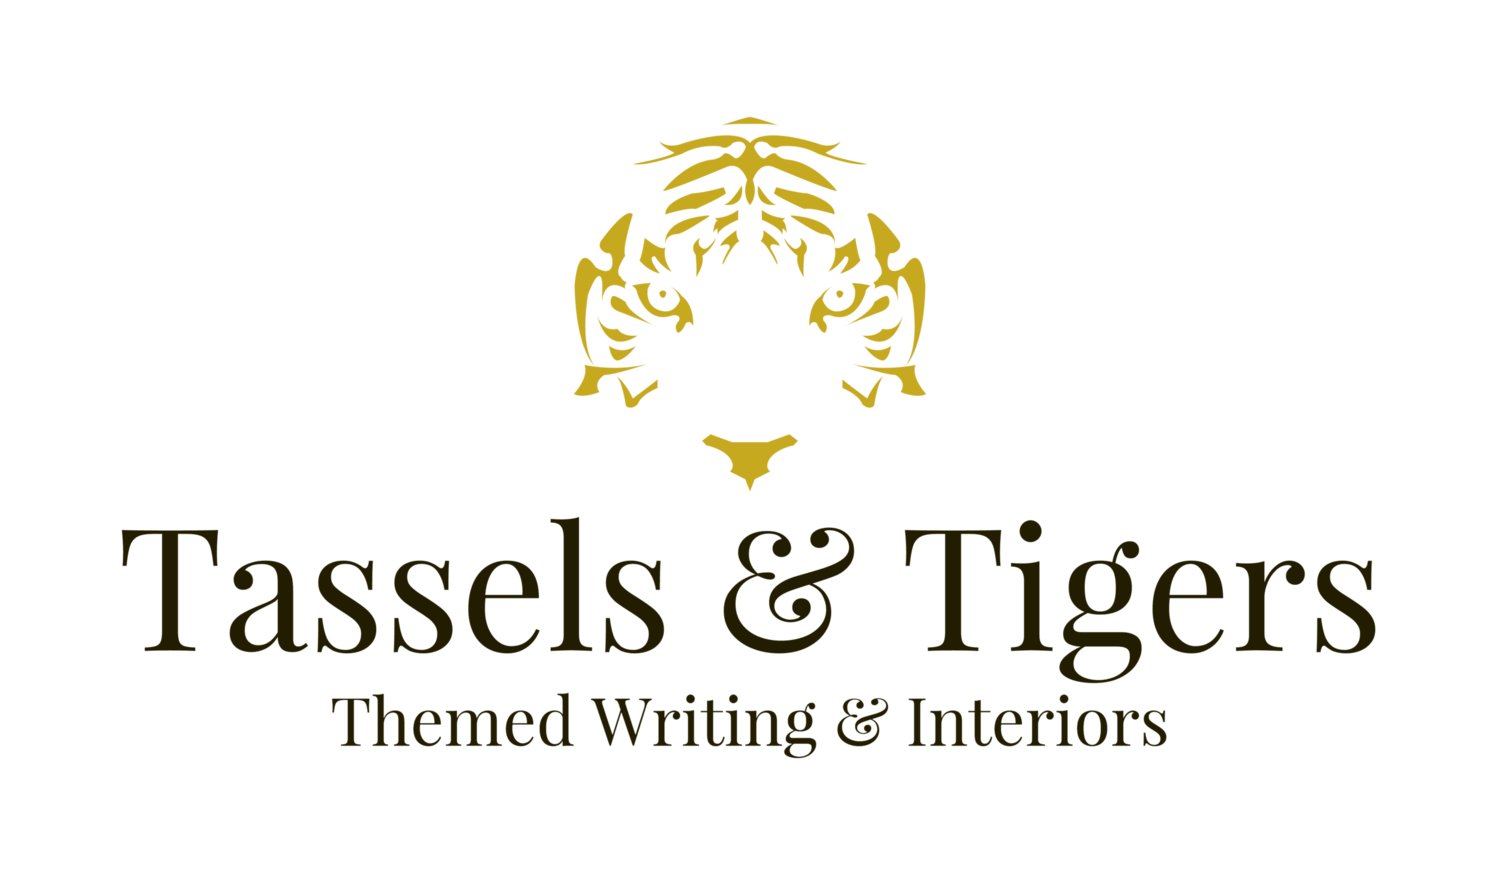 Tassels & Tigers Themed Interiors